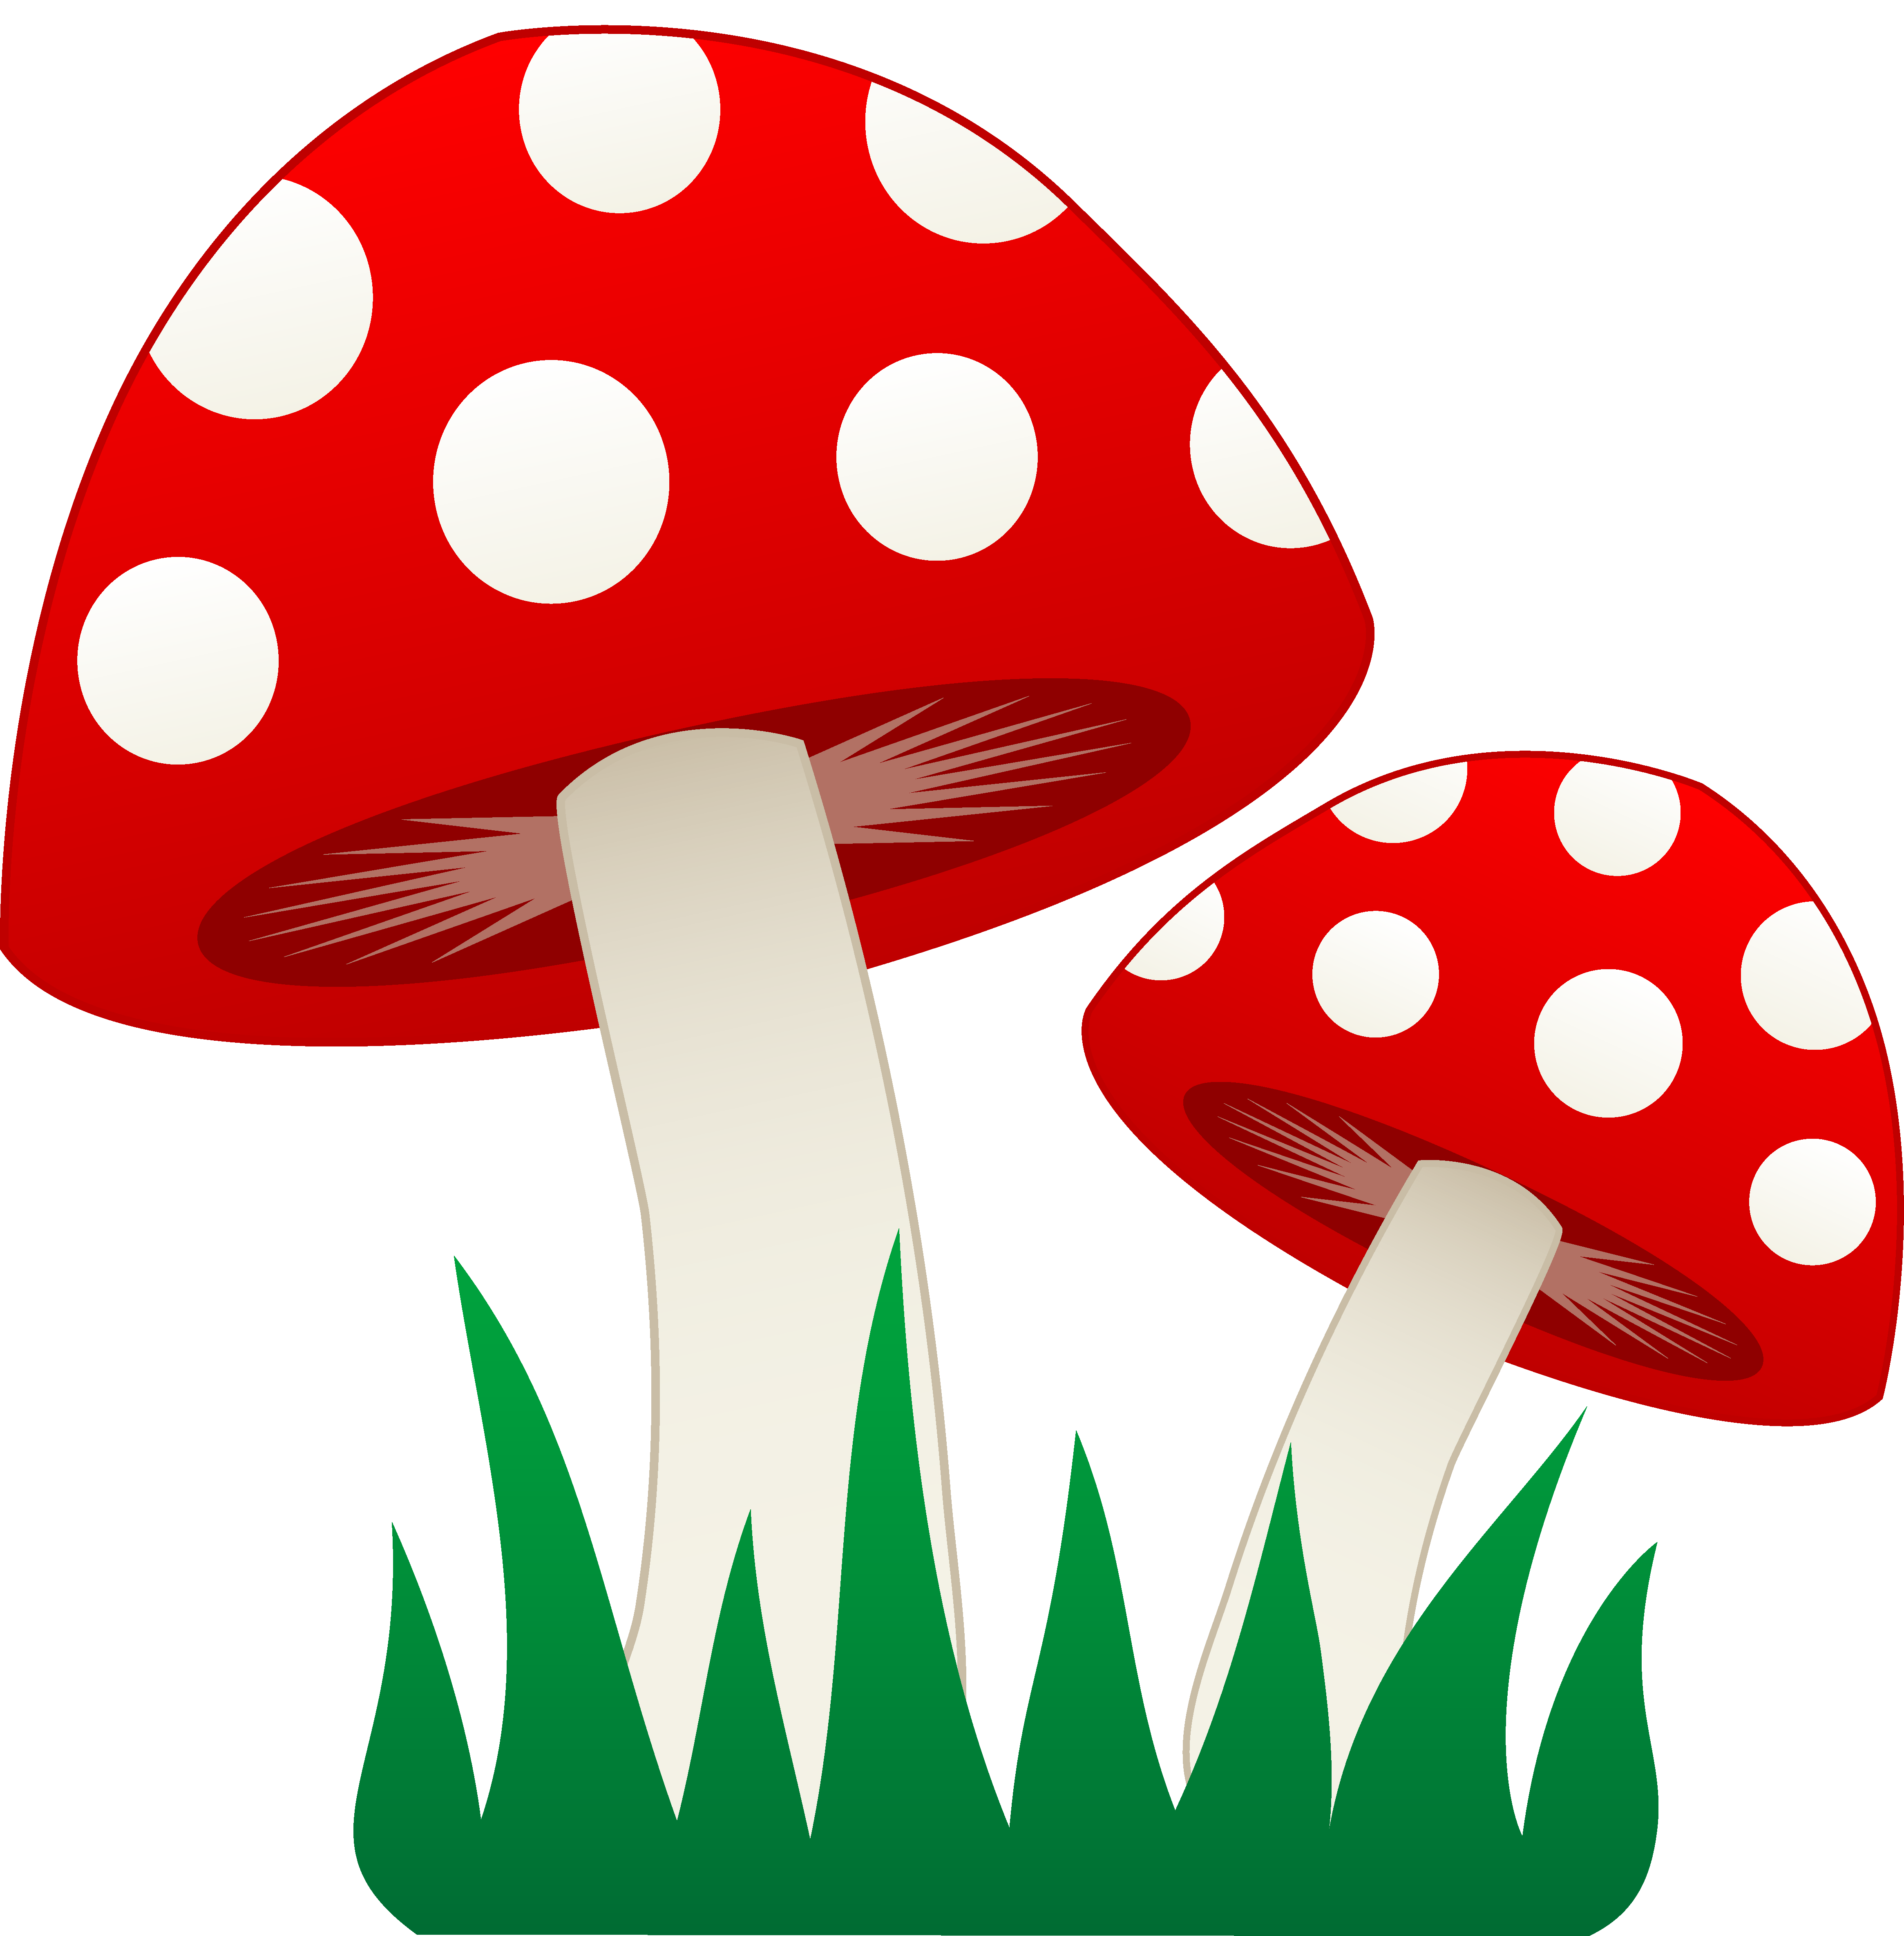 png freeuse stock Mushrooms clipart. Image group red and